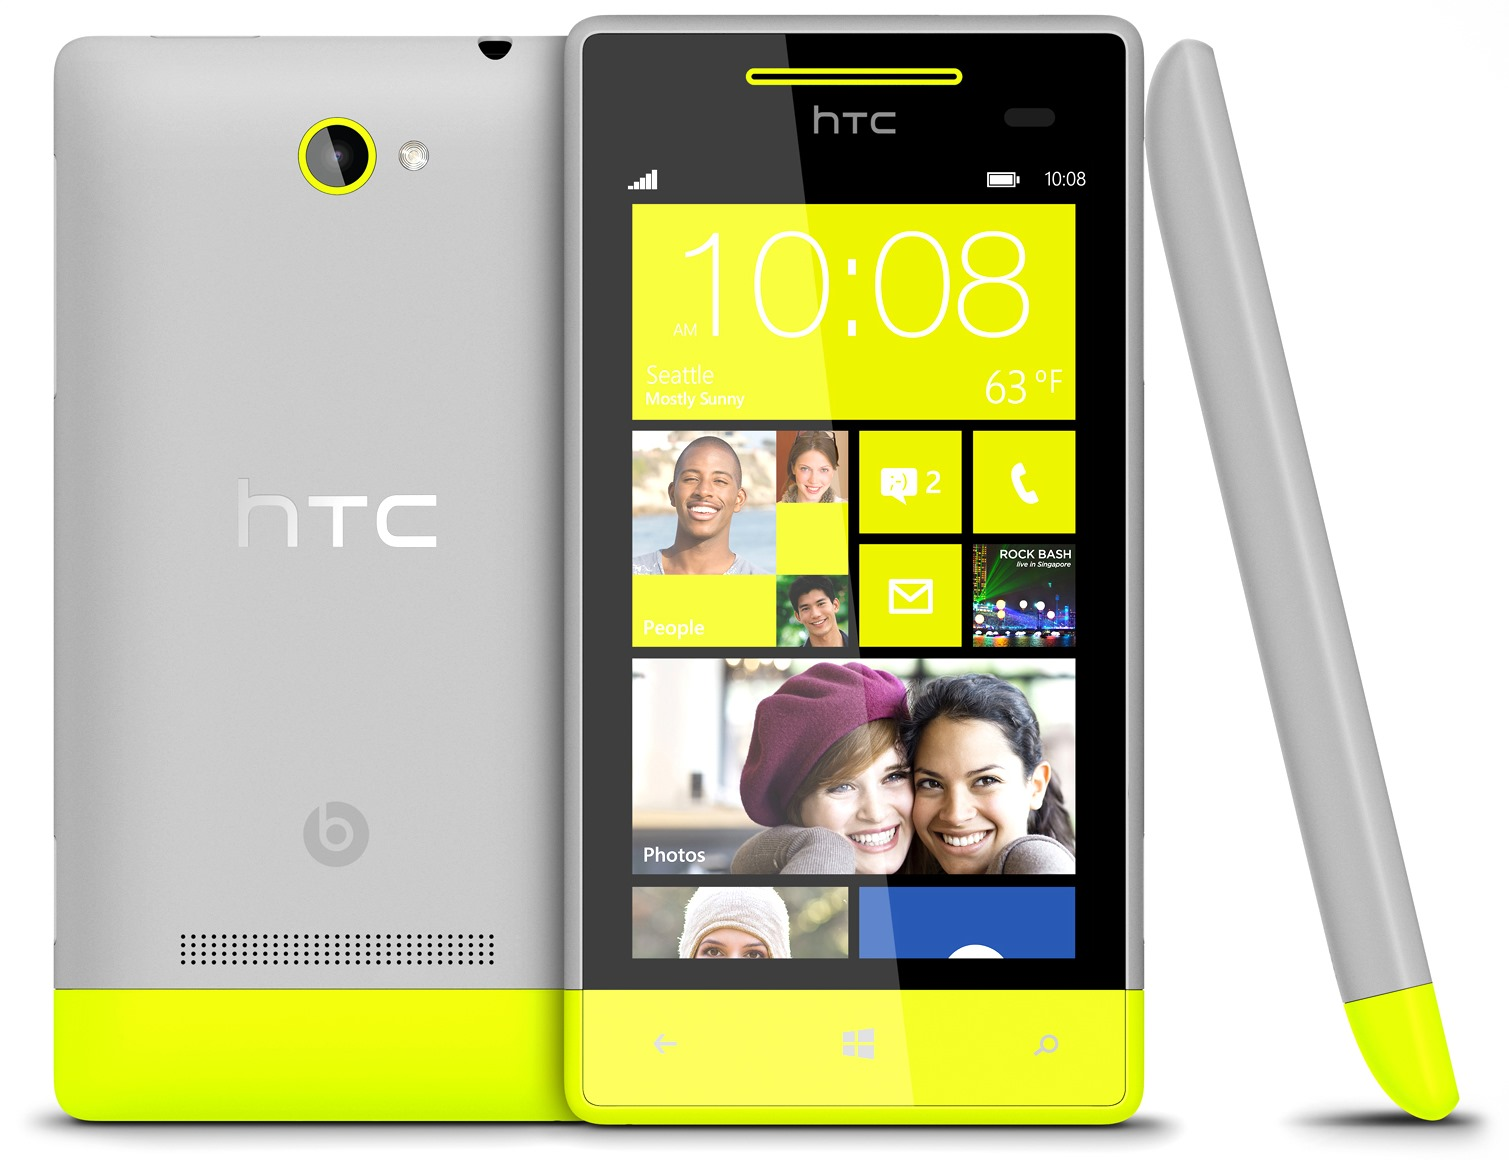 HTC Windows Phone 8S Yellow   SiliconANGLE